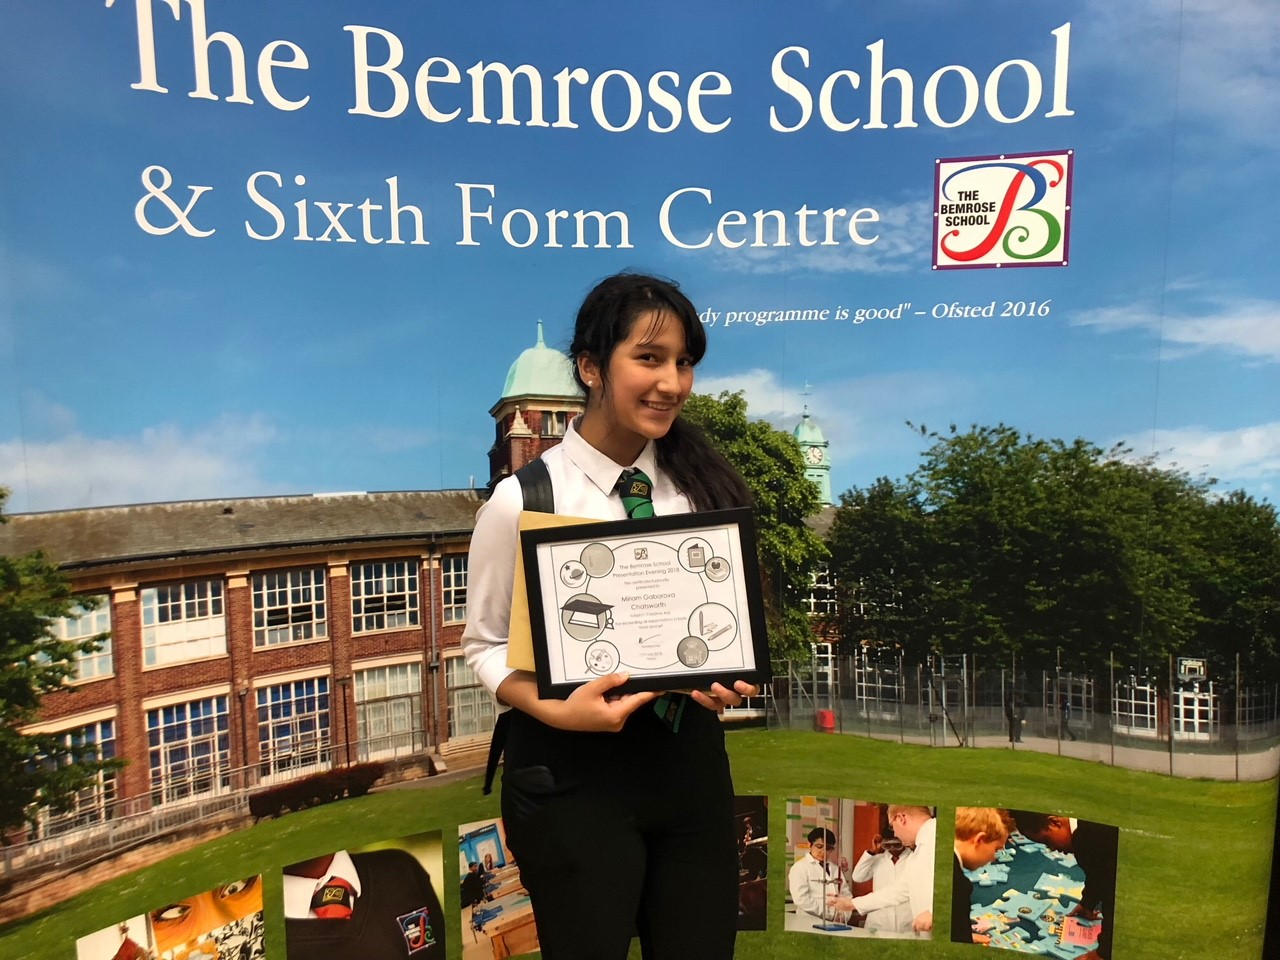 Pupils from The Bemrose School were rewarded for their hard work at an end-of-year ceremony. Penguin PR: public relations, media and communications